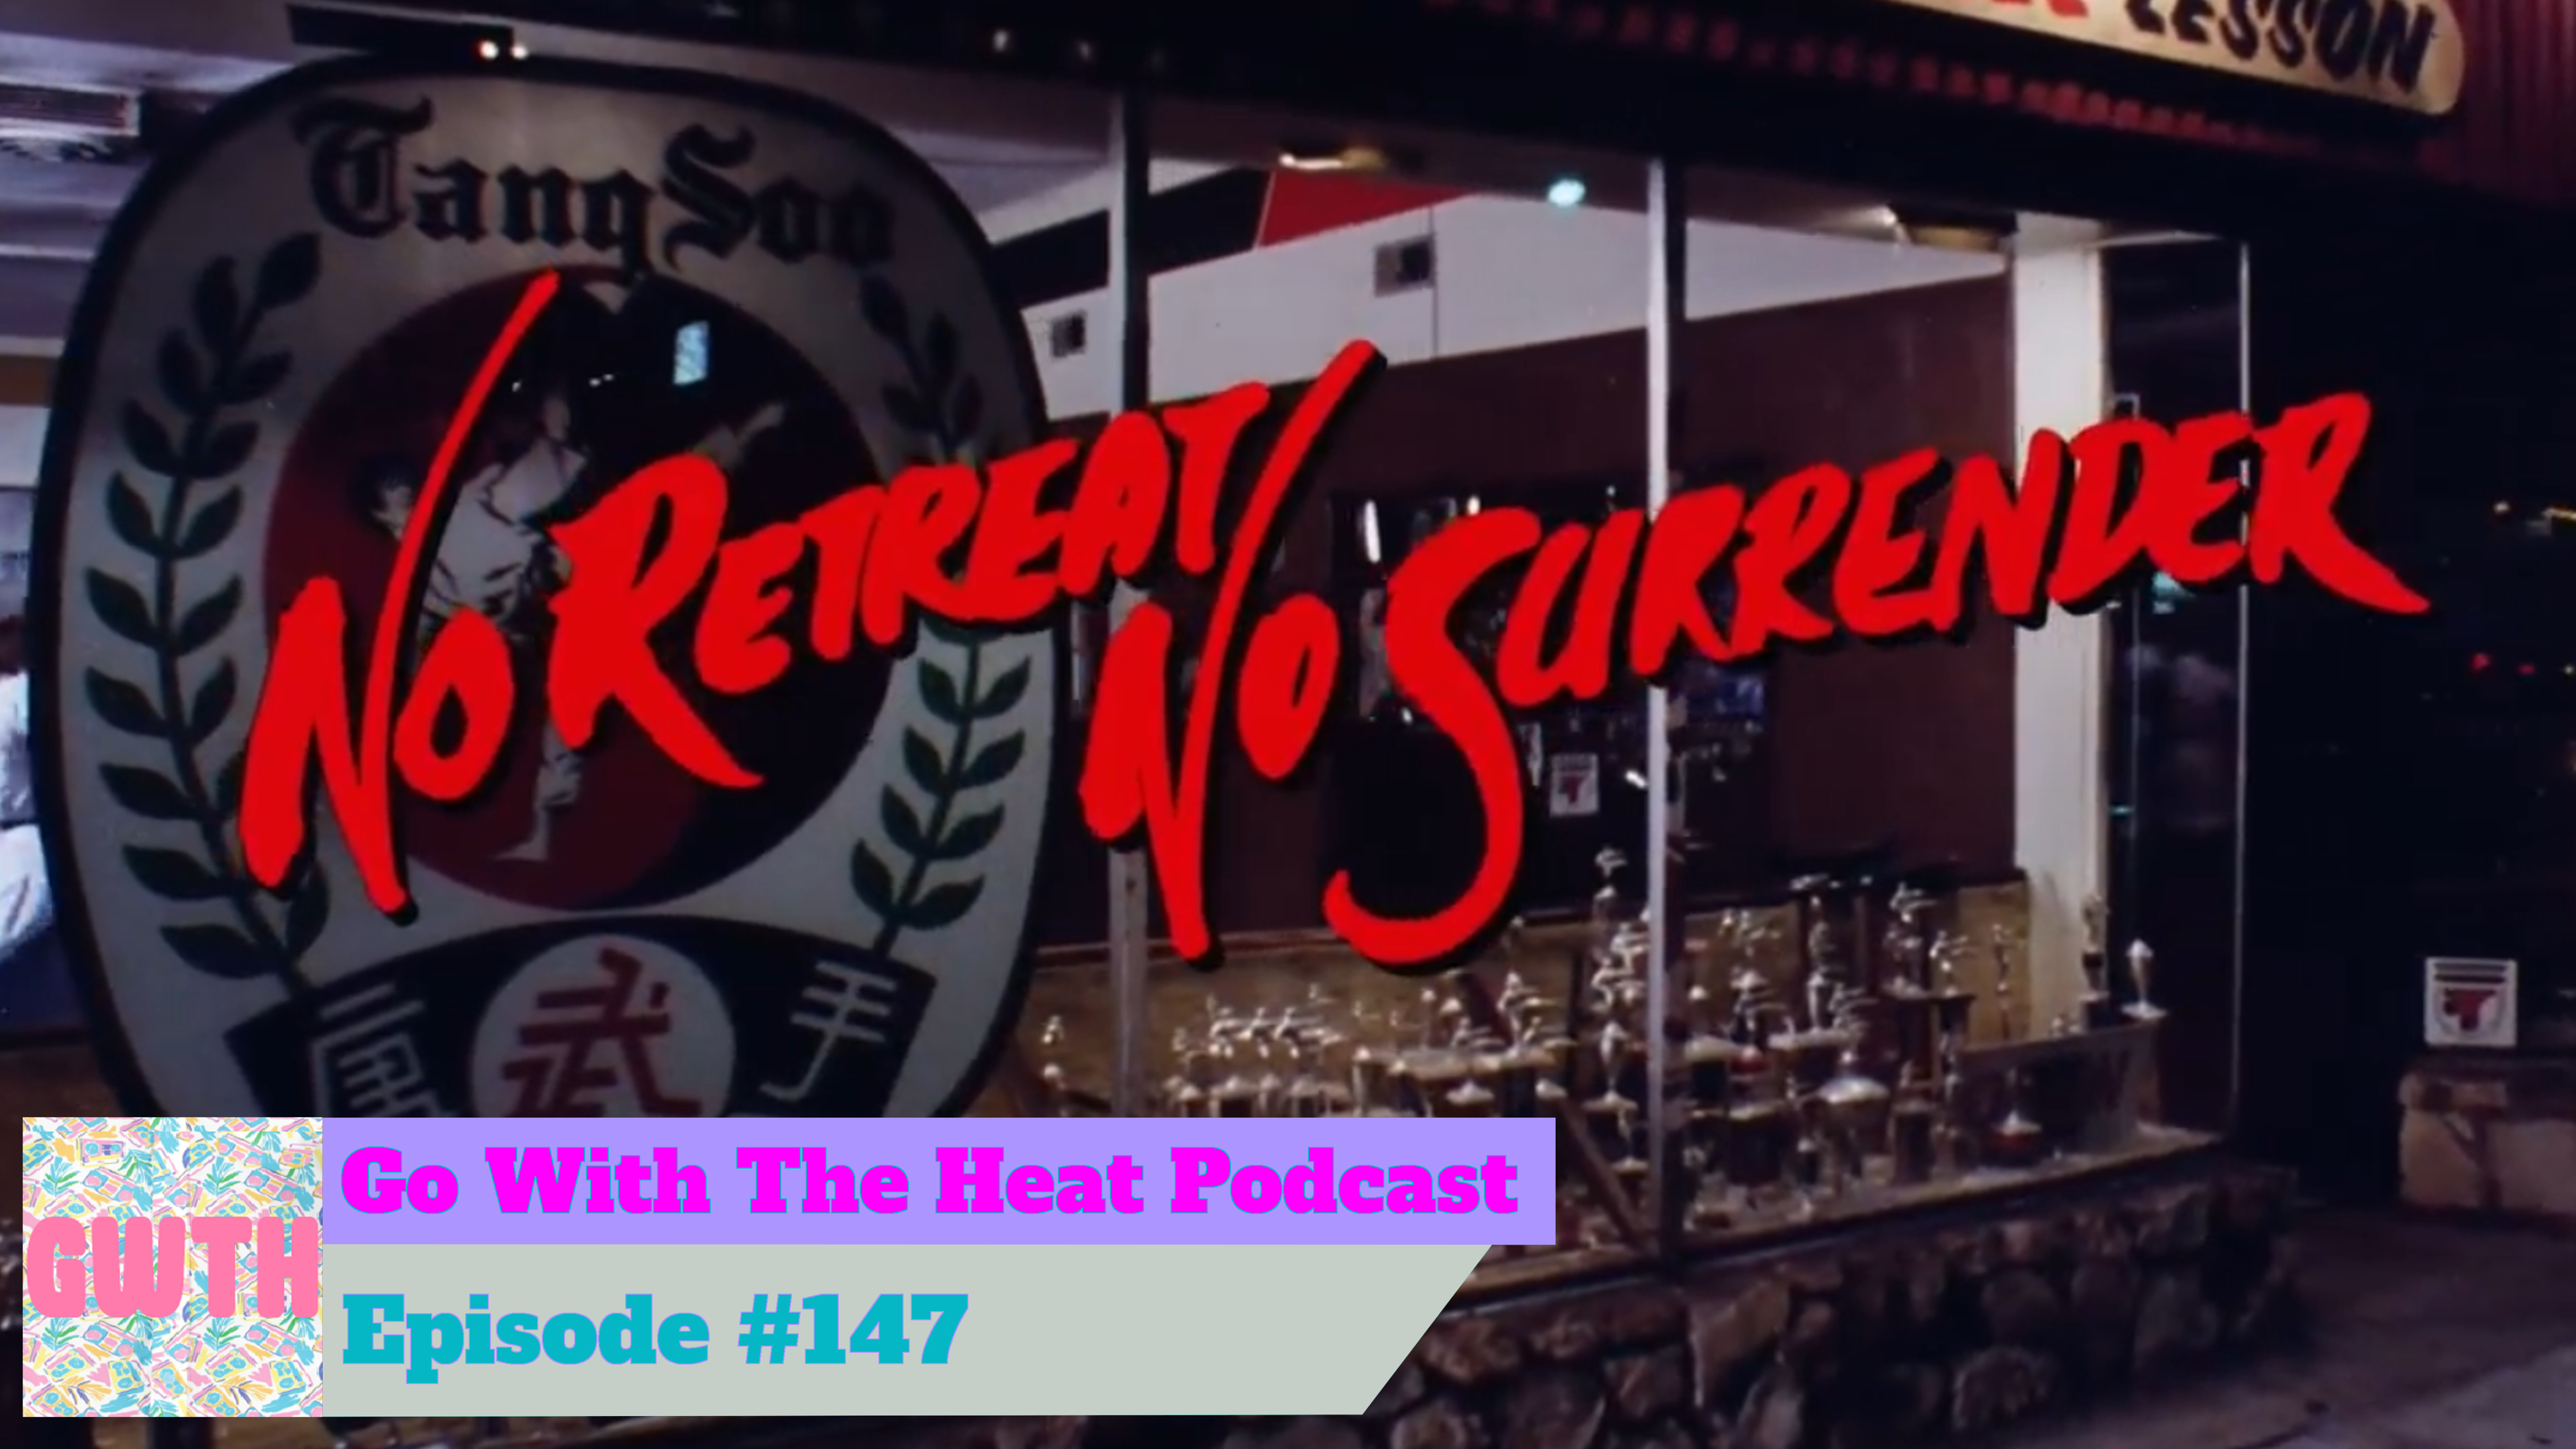 Go With The Heat 147 – No Retreat, No Surrender